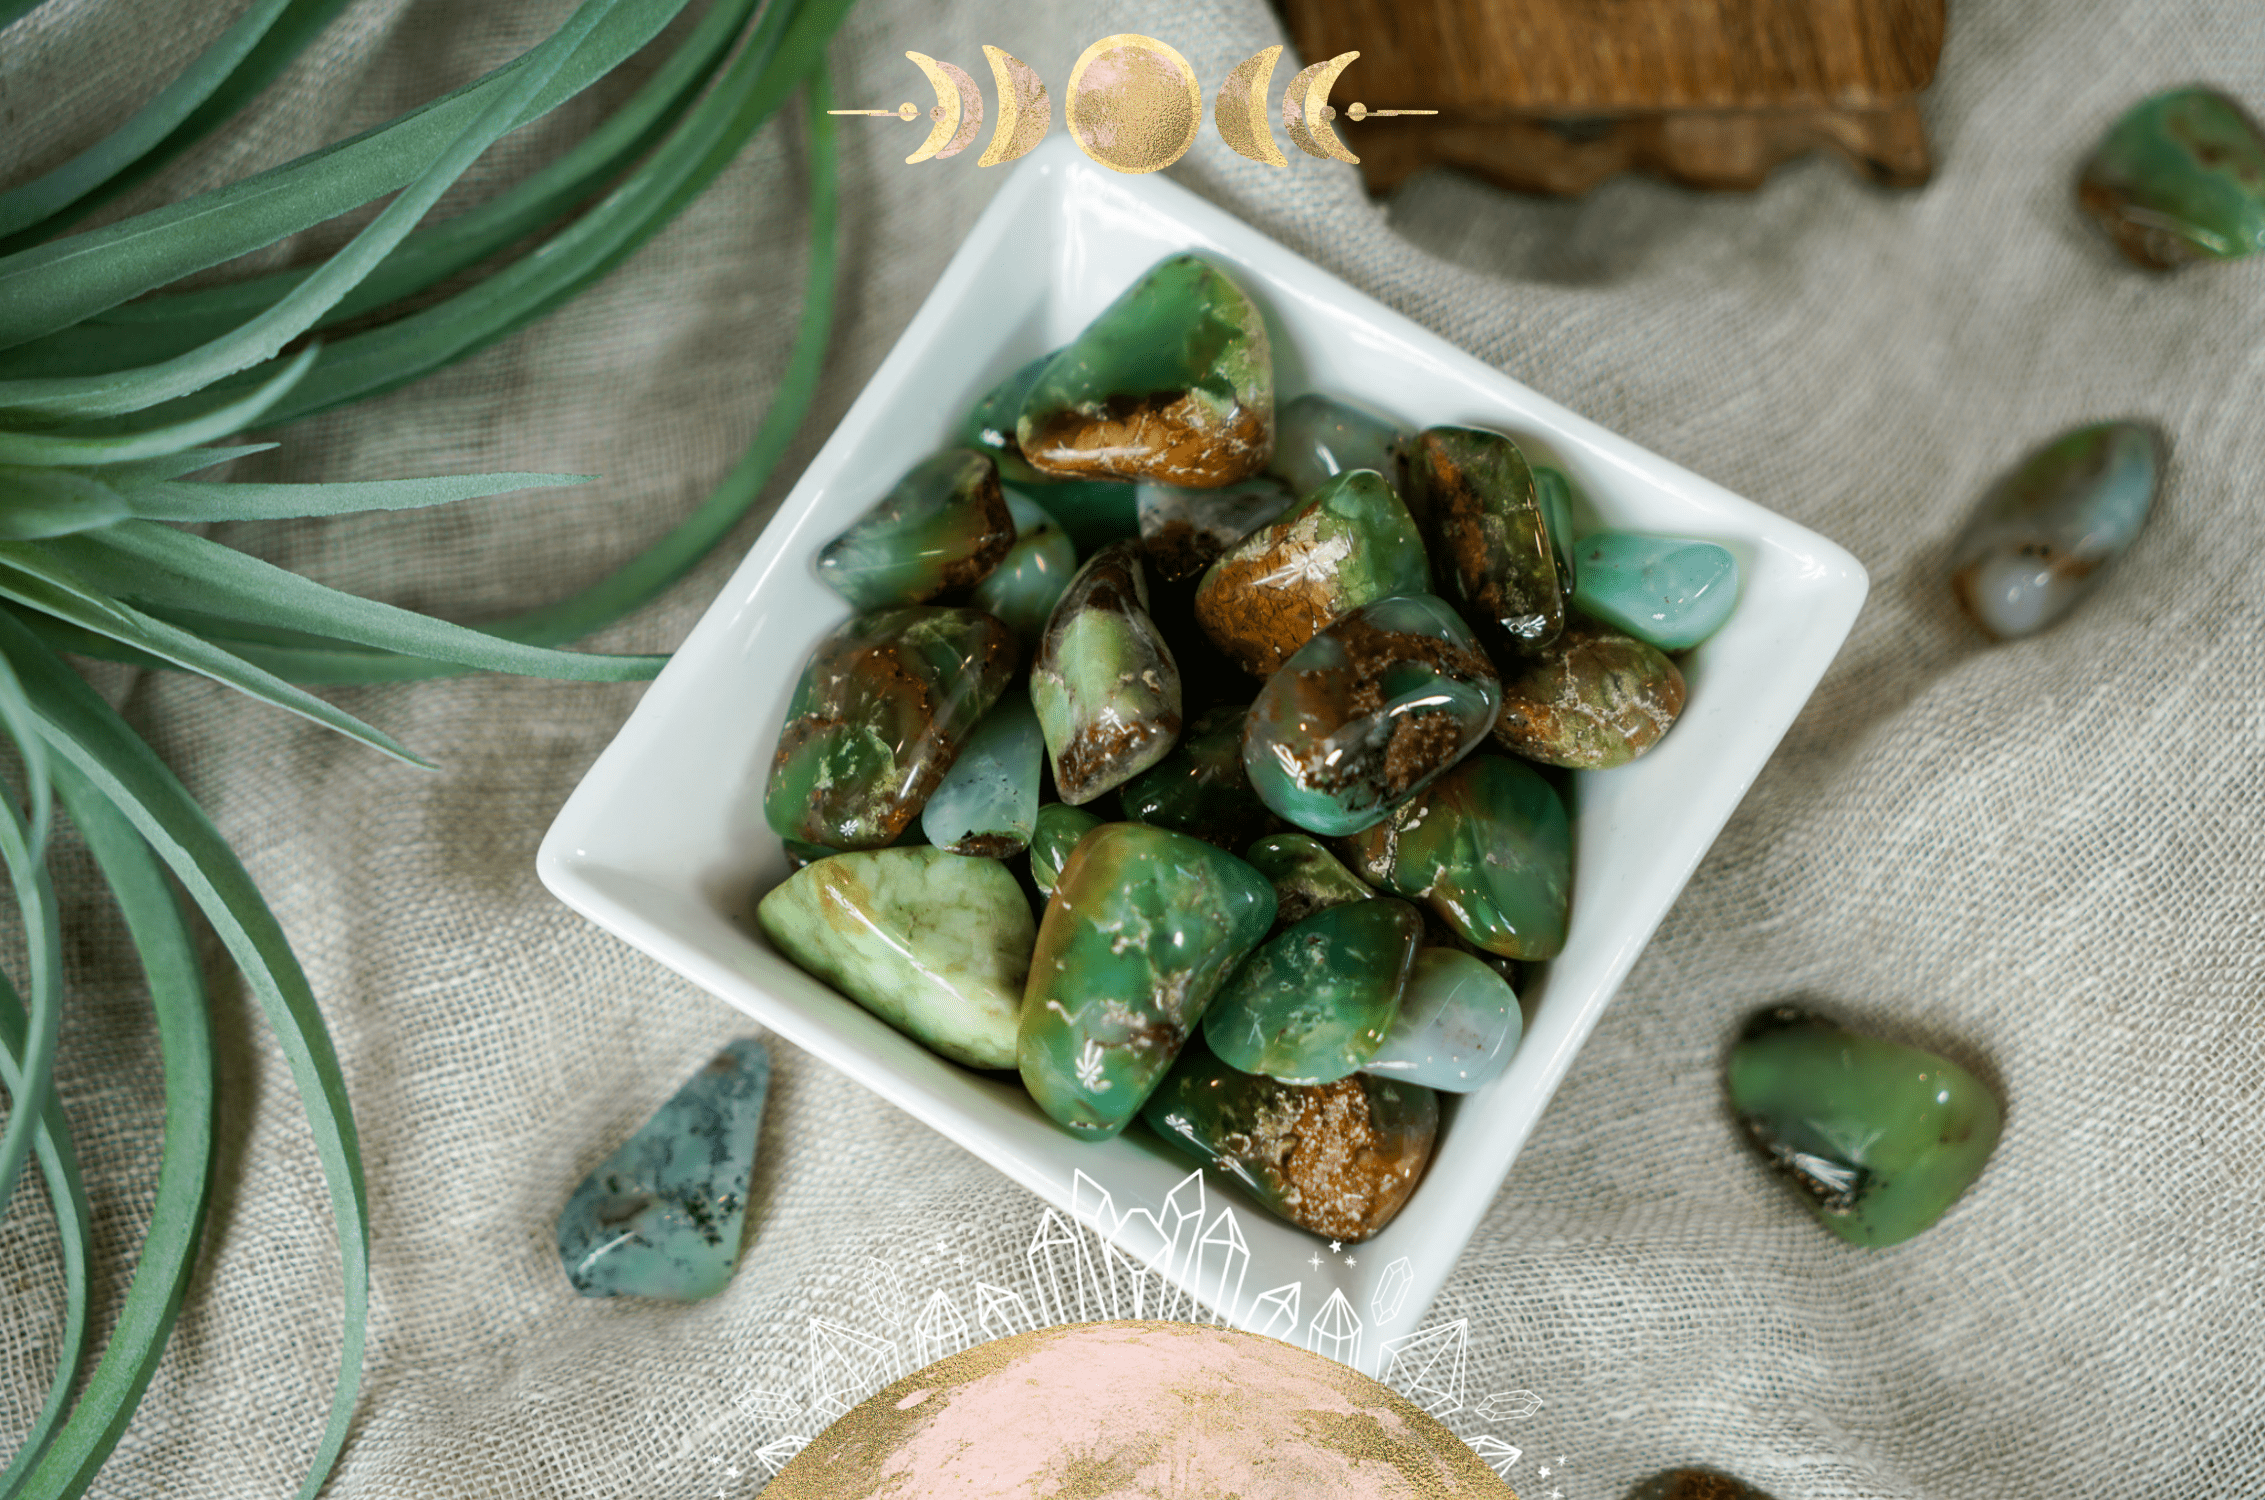 Healing Properties of Chrysoprase: A Crystal for Compassion & Self-Reliance